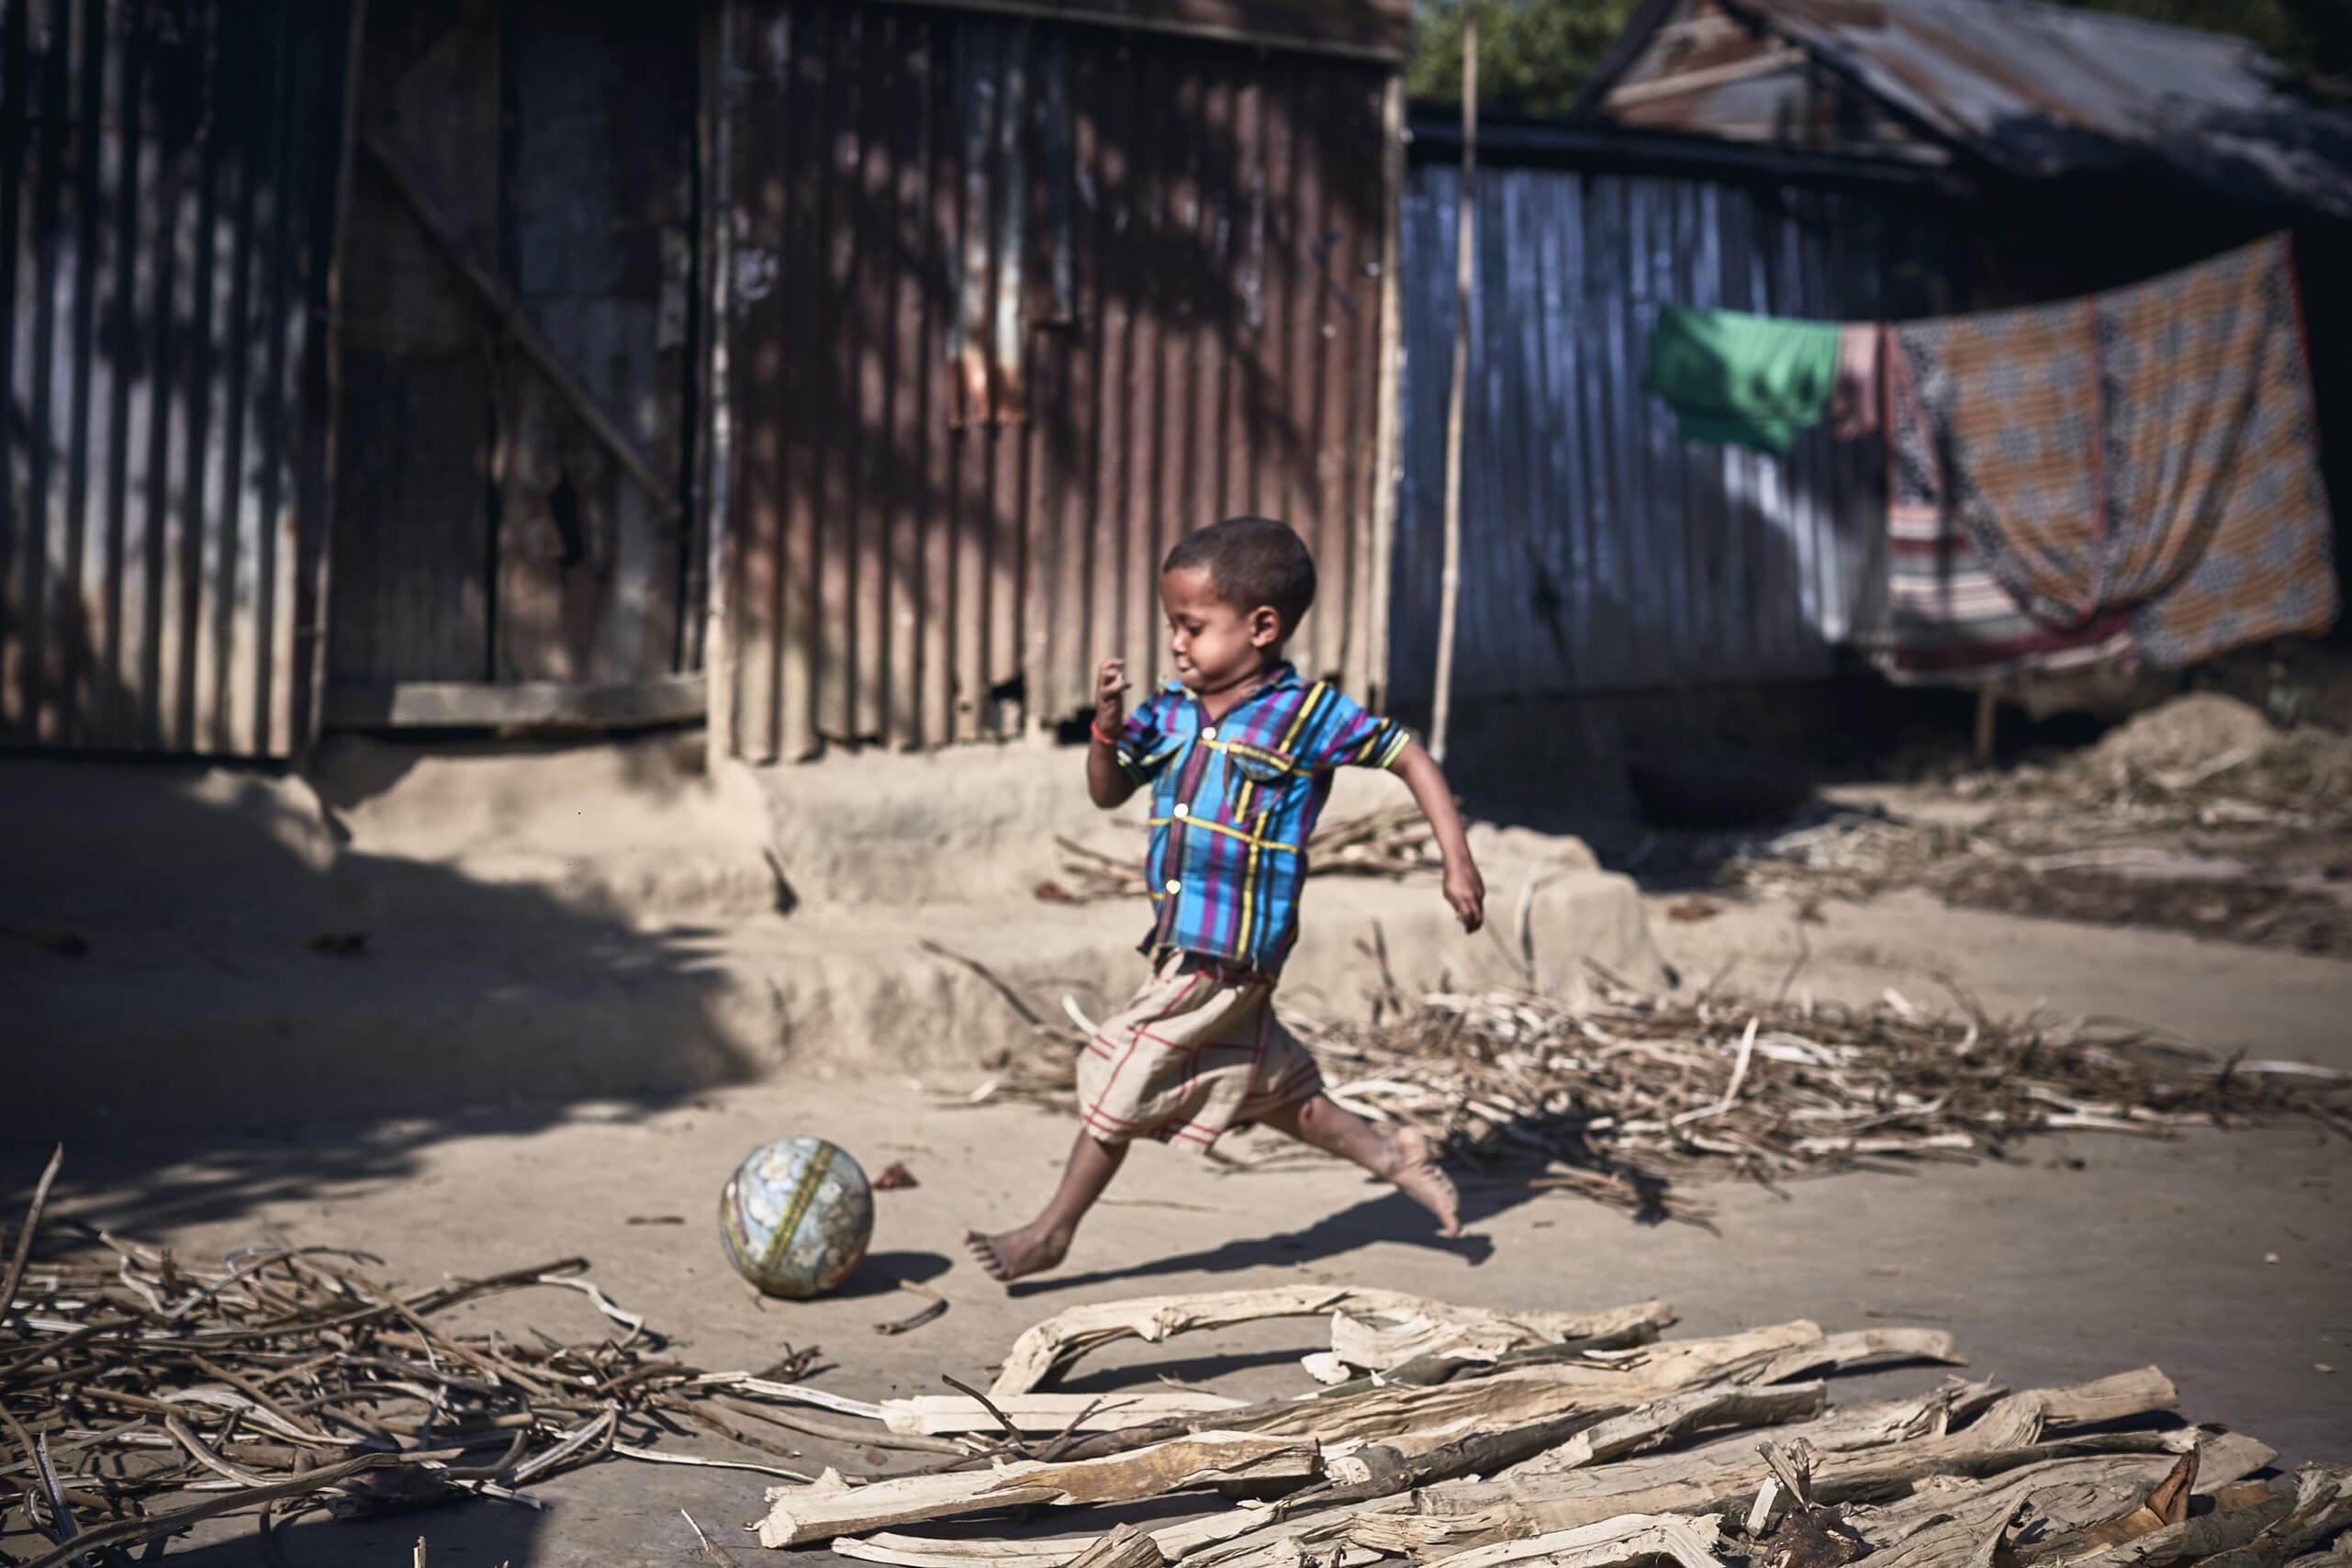 Nirob plays football in his village in rural Bangladesh.